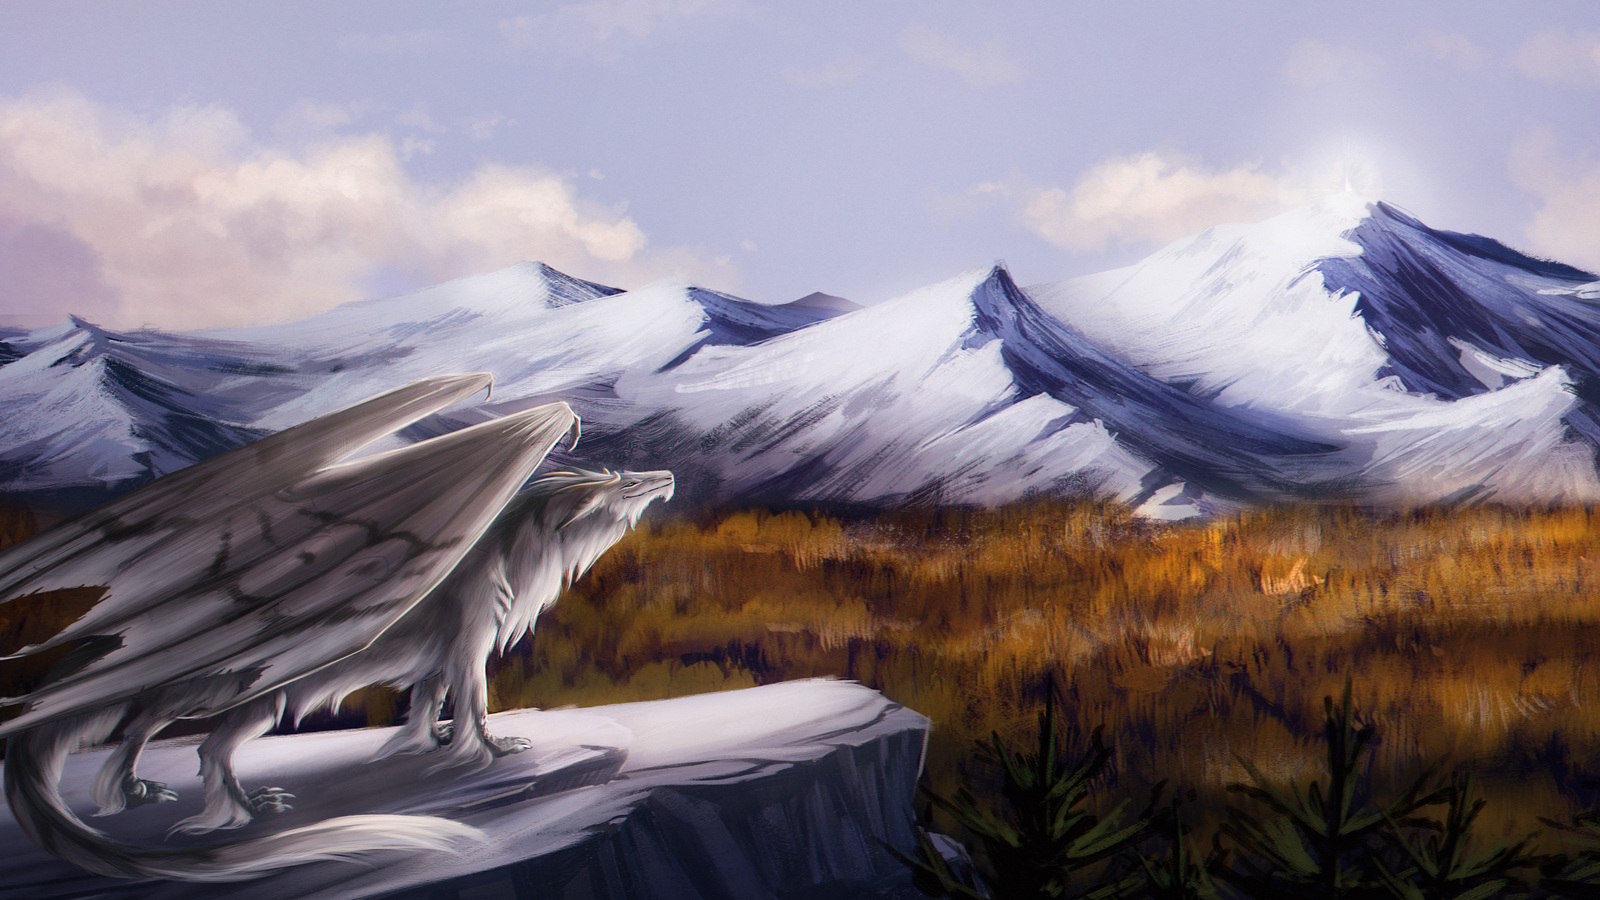 dragon-feral-landscape-fantasy-mountain-art-5k-pv.jpg